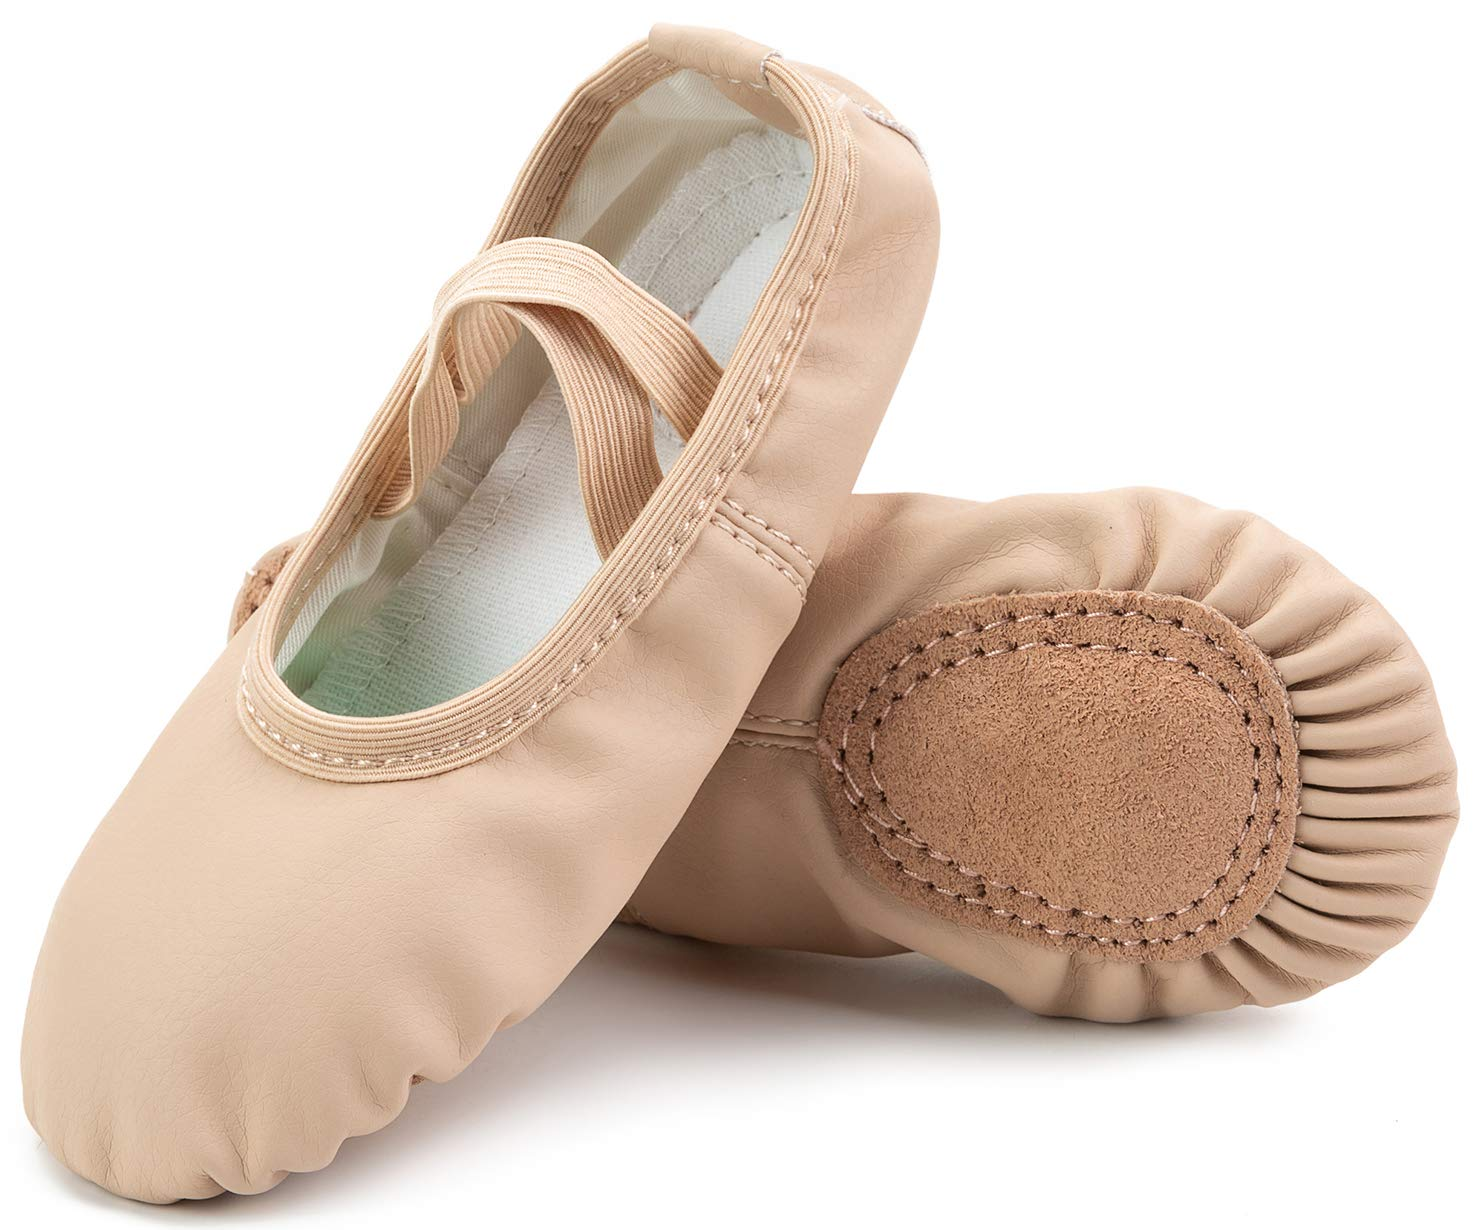 Scurtain Girls Leather Ballet Shoes Full Sole Yoga Shoes/Dance Shoes(Toddler/Little Kid/Big Kid/Women)